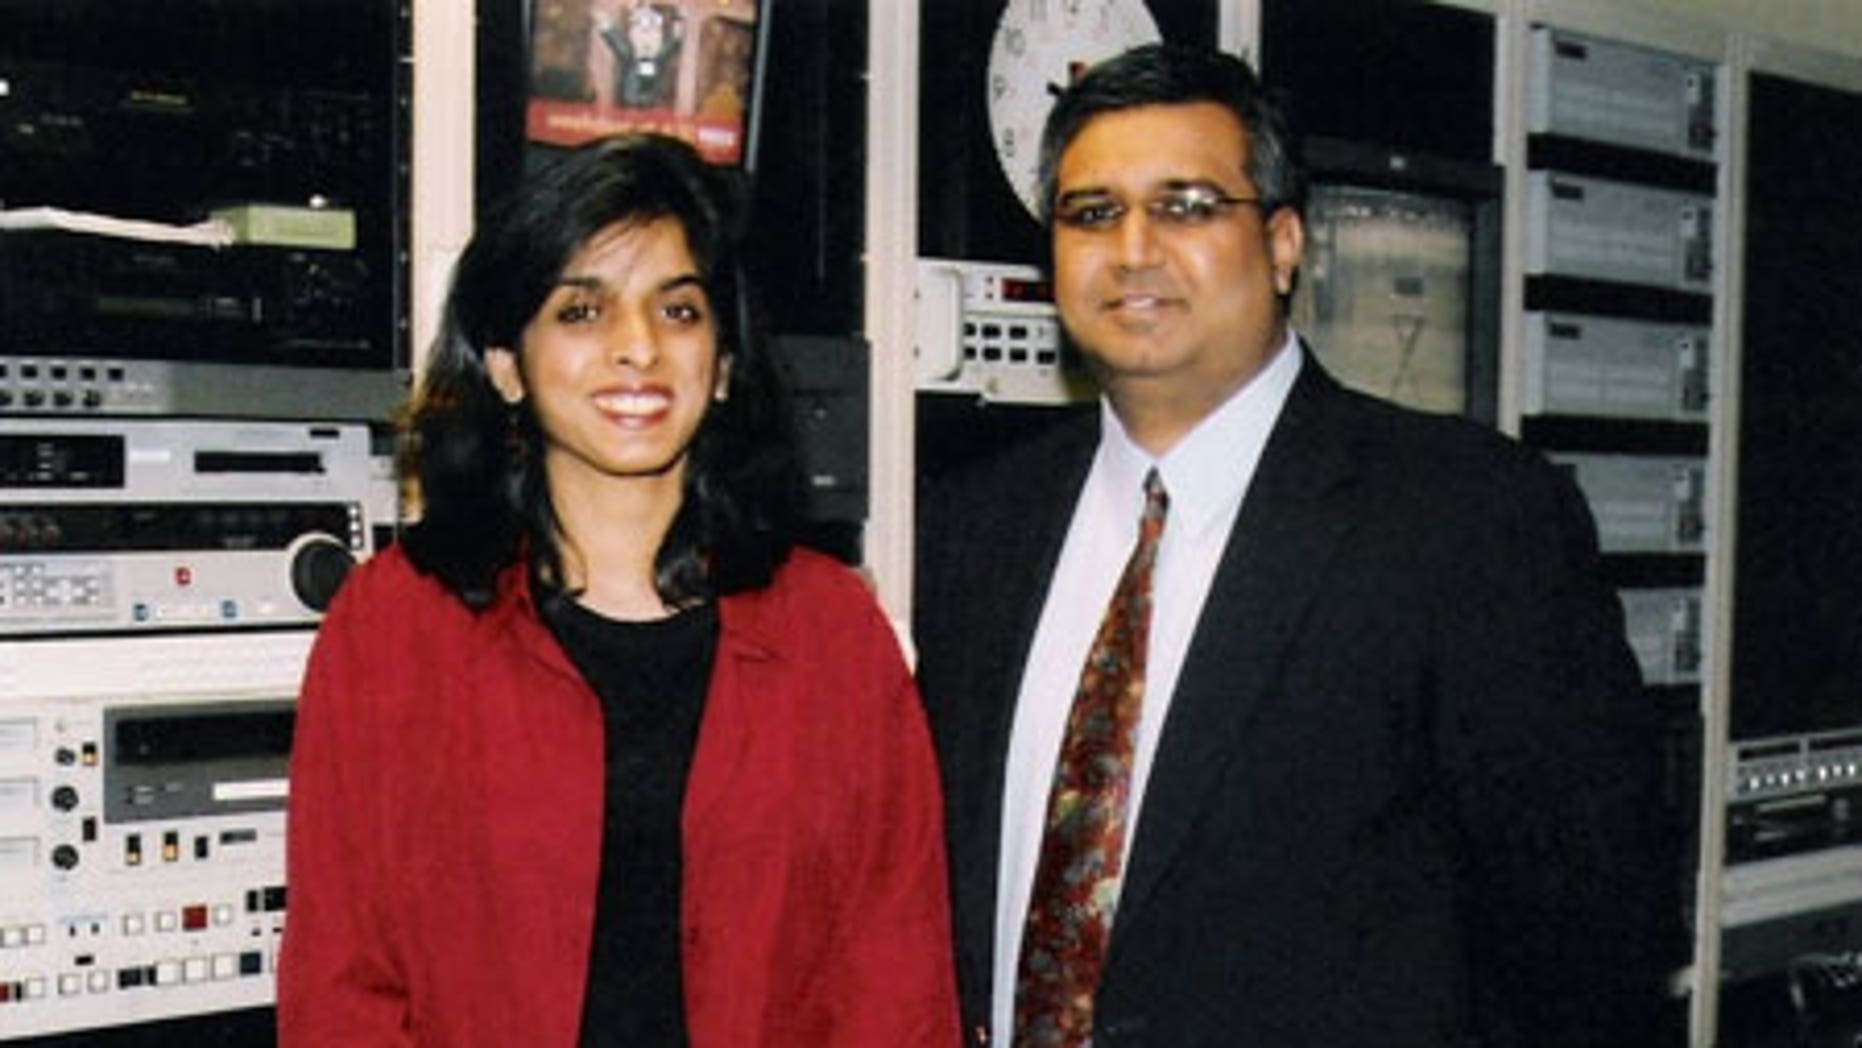 Muzzammil Hassan, right, founder of Bridges TV, is charged with murder in the beheading of his wife, Aasiya Hassan, left, in Orchard Park, N.Y.